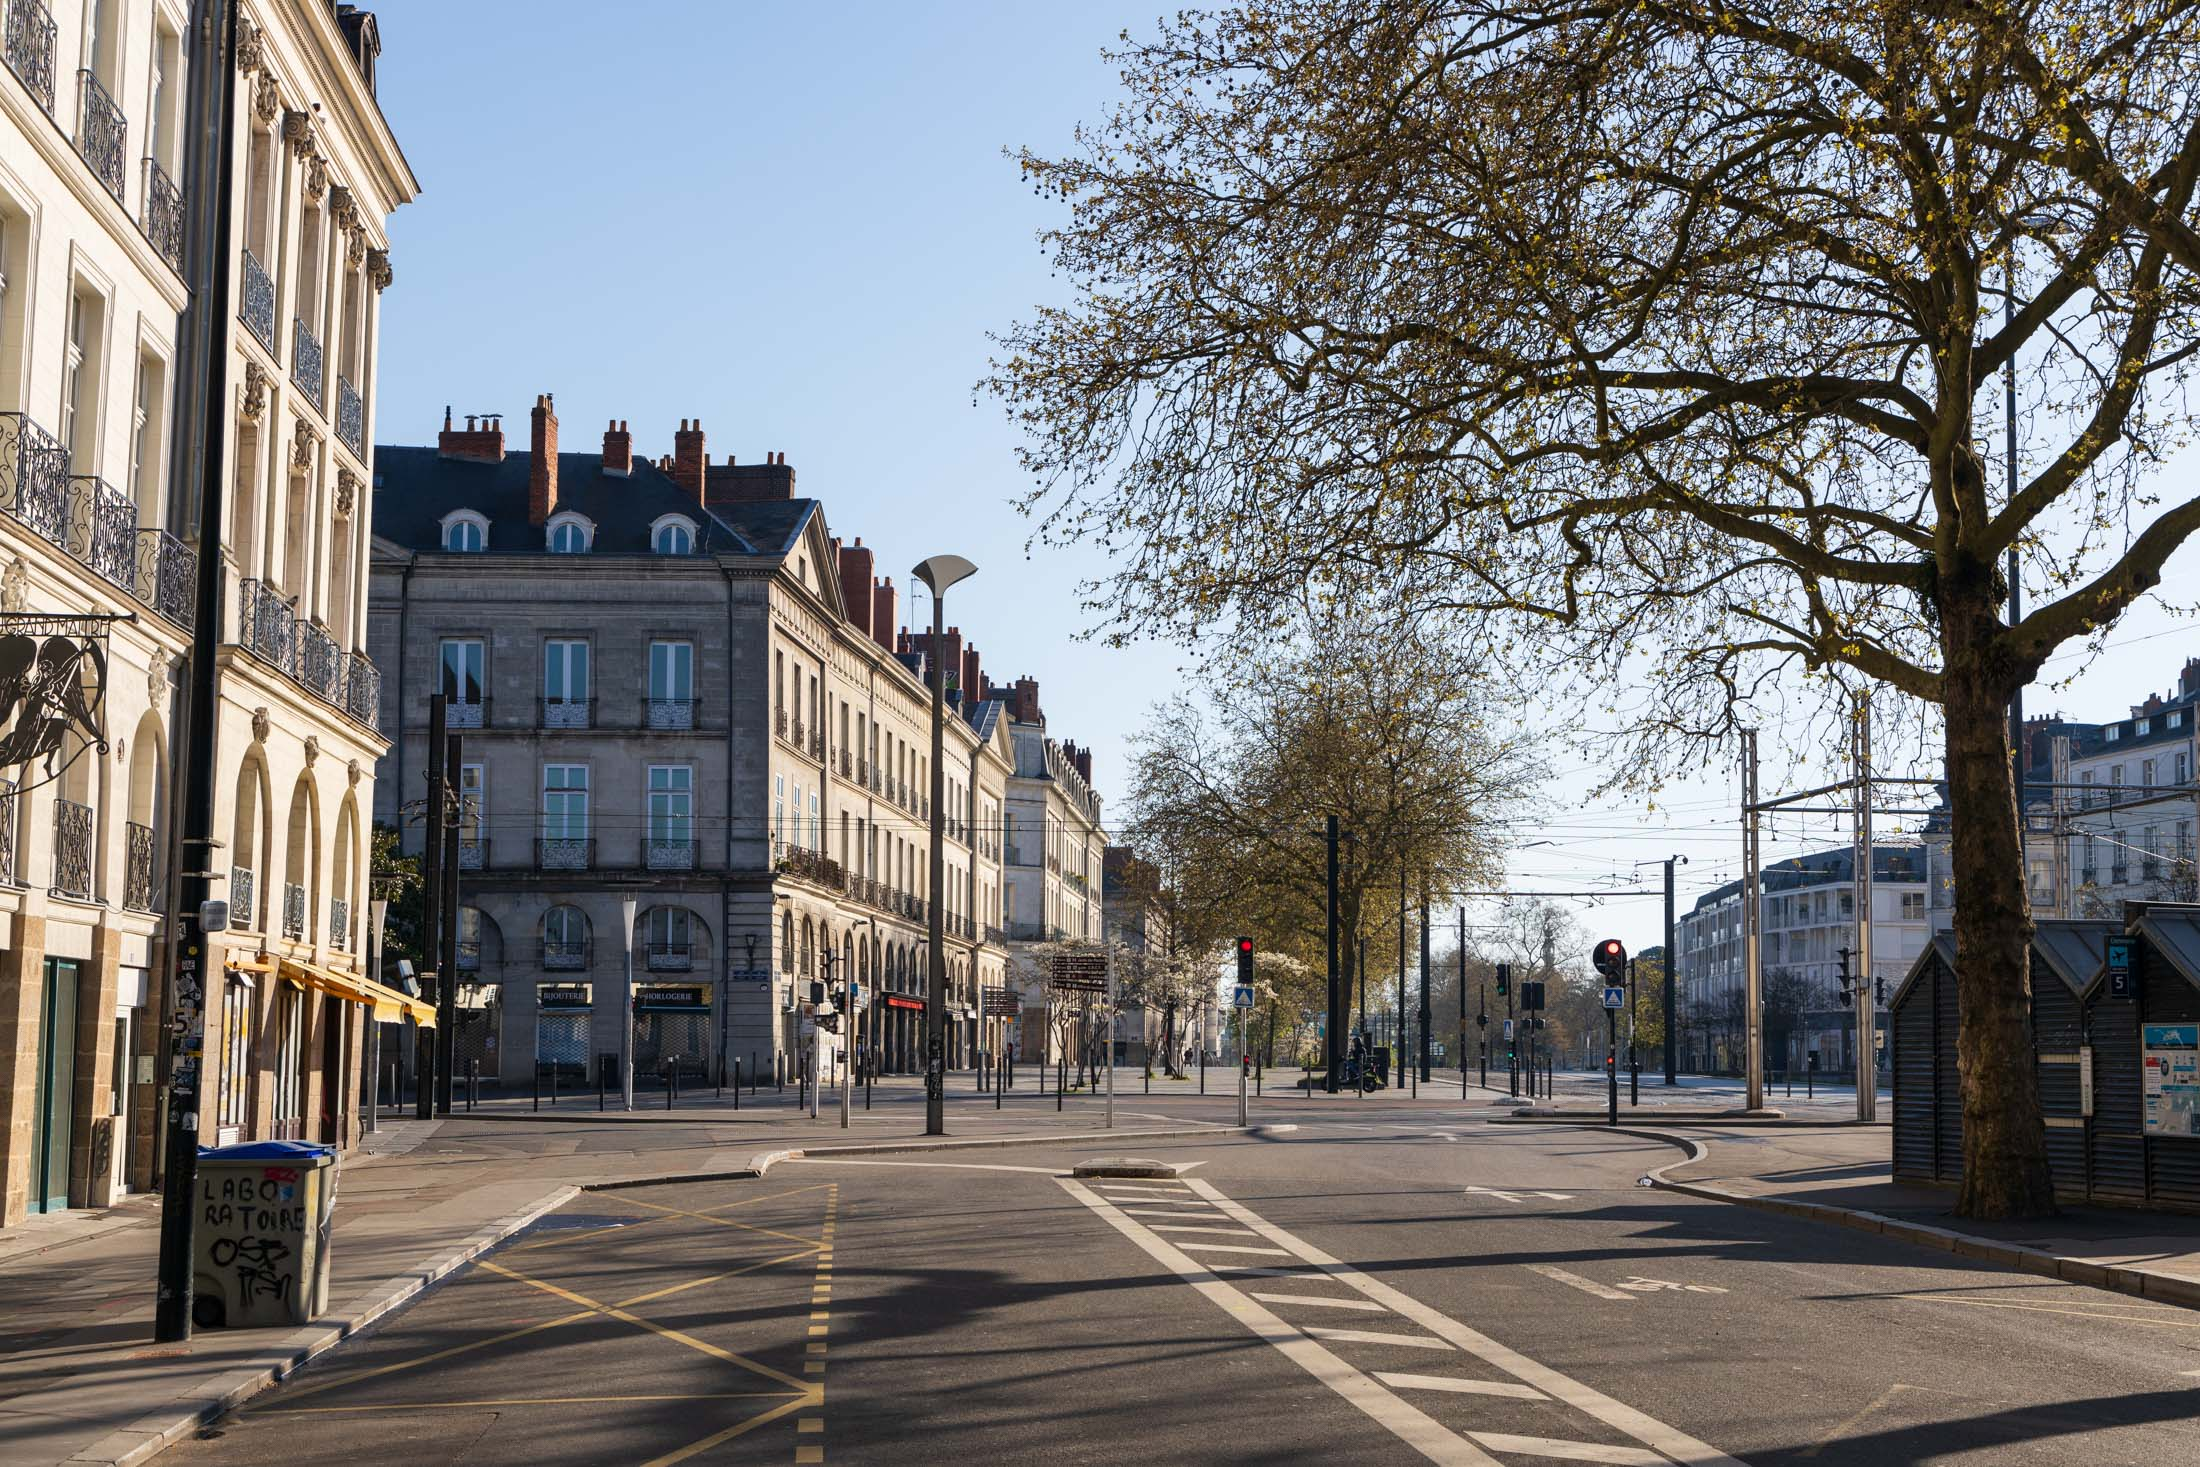 Streets of Nantes are empty, such as here at Commerce. Nantes, France - March 25th 2020.Les rues de Nantes sont vides, comme ici à Commerce. Nantes, France - 25 mars 2020.